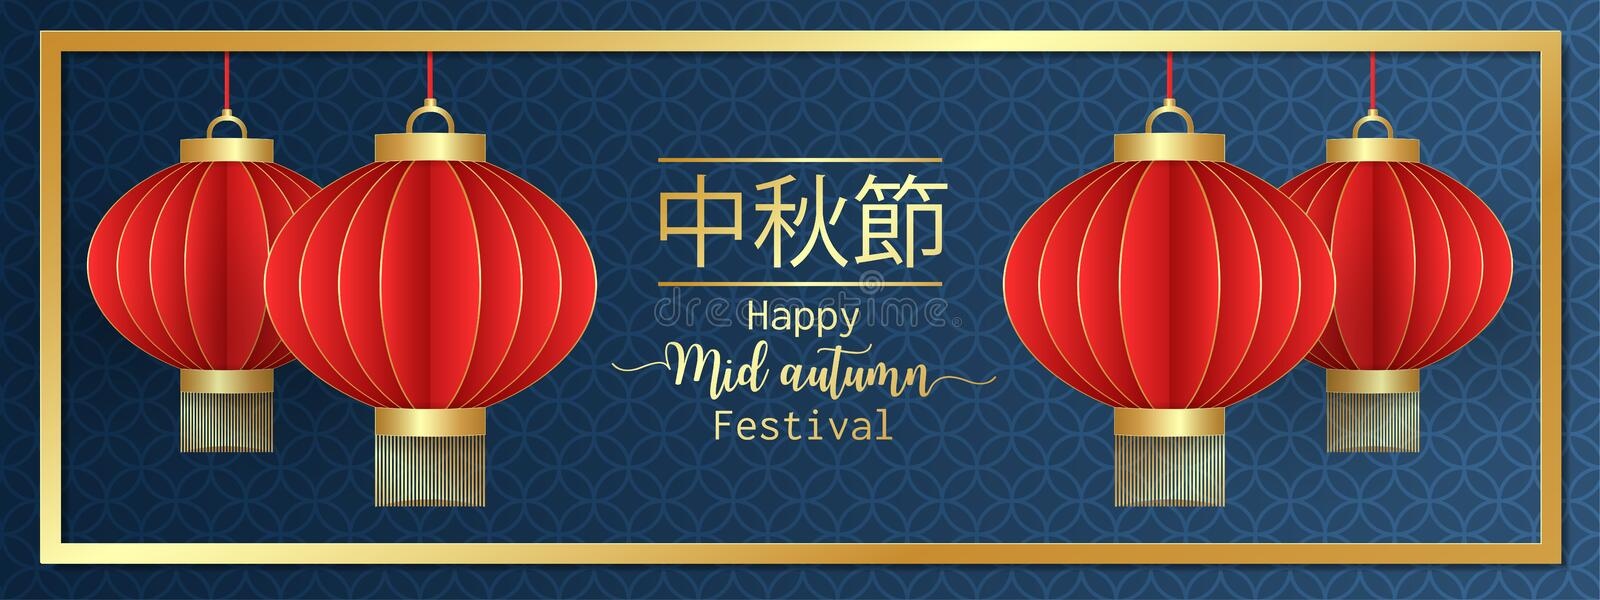 Mid autumn festival greeting card with red lantern on blue background. Chinese translate : Mid Autumn Festival. Vector illustration royalty free illustration